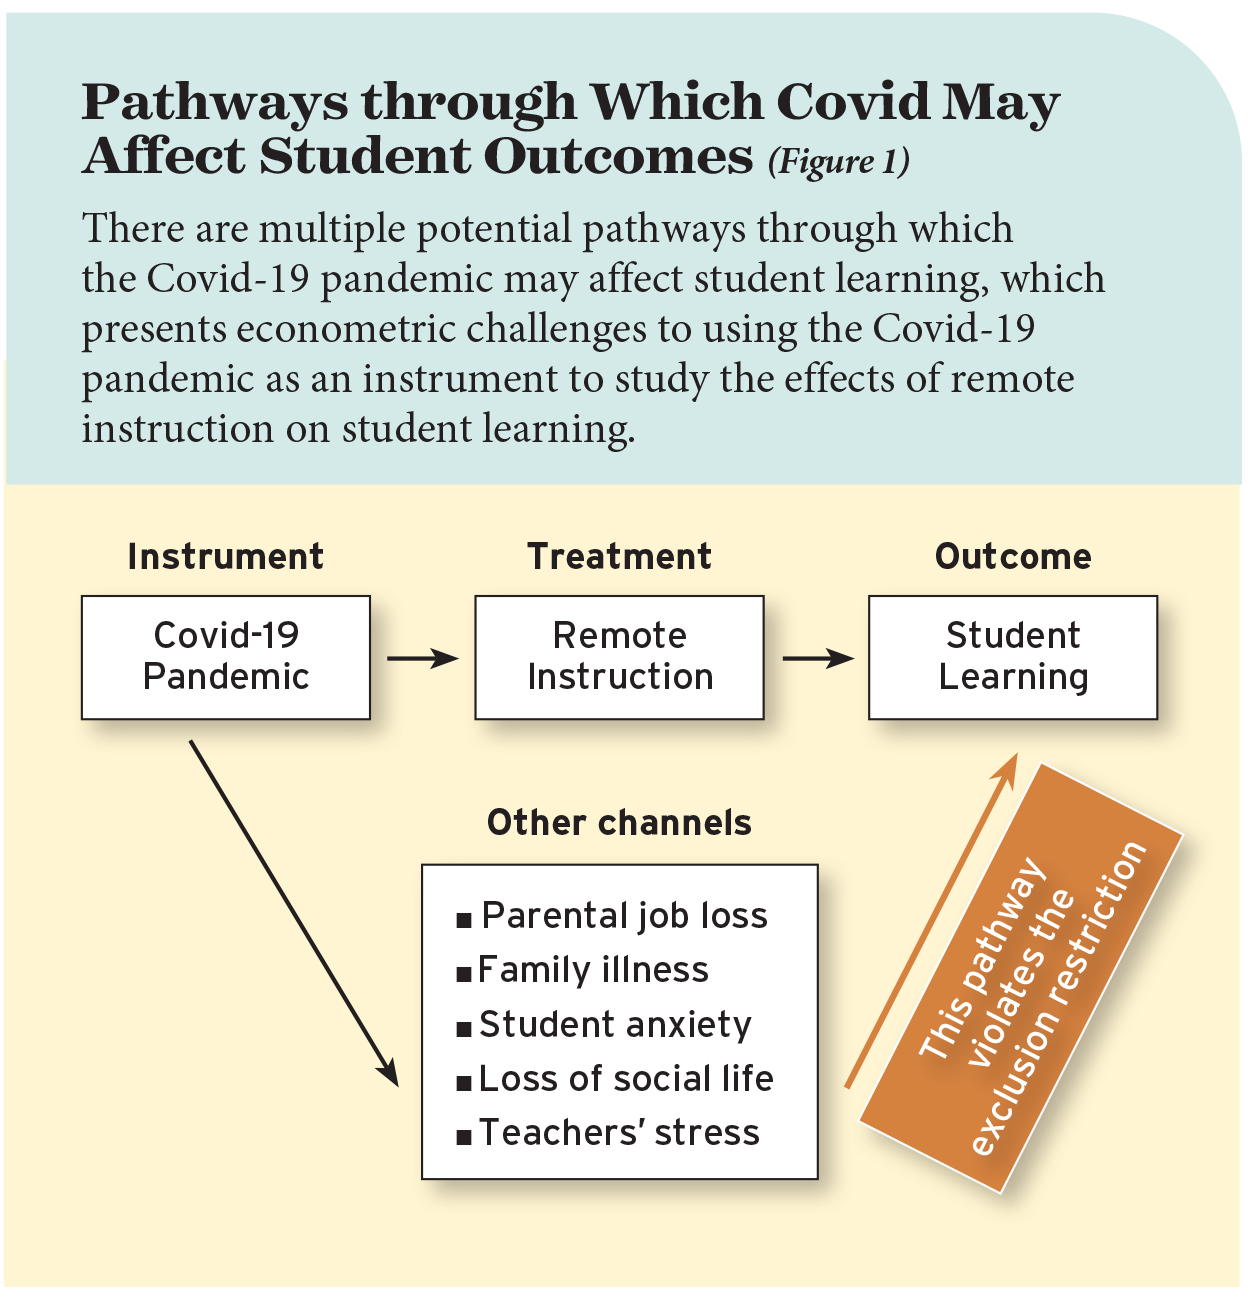 Pathways through Which Covid May Affect Student Outcomes (Figure 1)